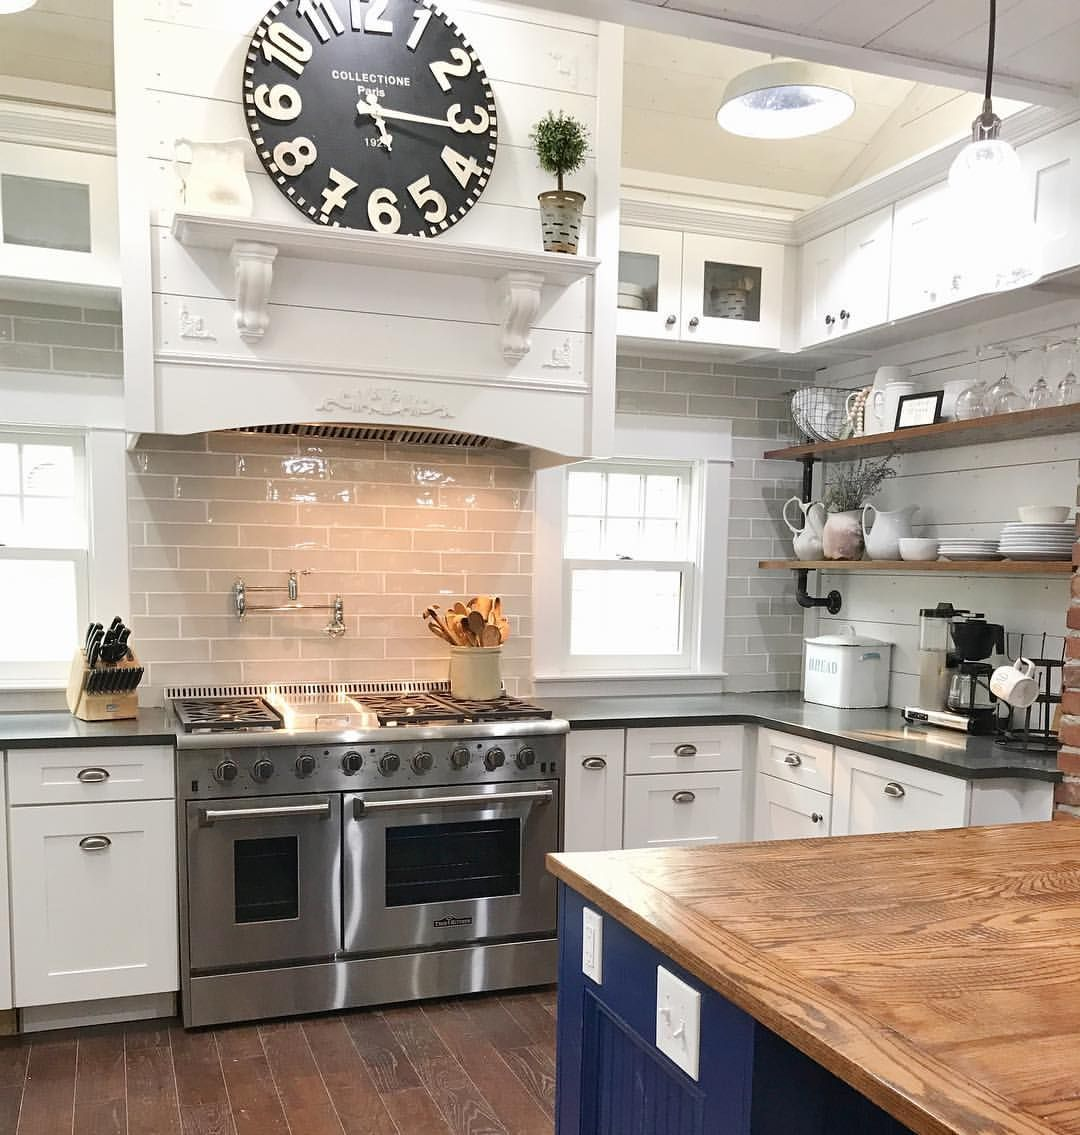 Kitchen Art Llc: Pin By The Pickled Rose, LLC On Farmhouse Kitchen